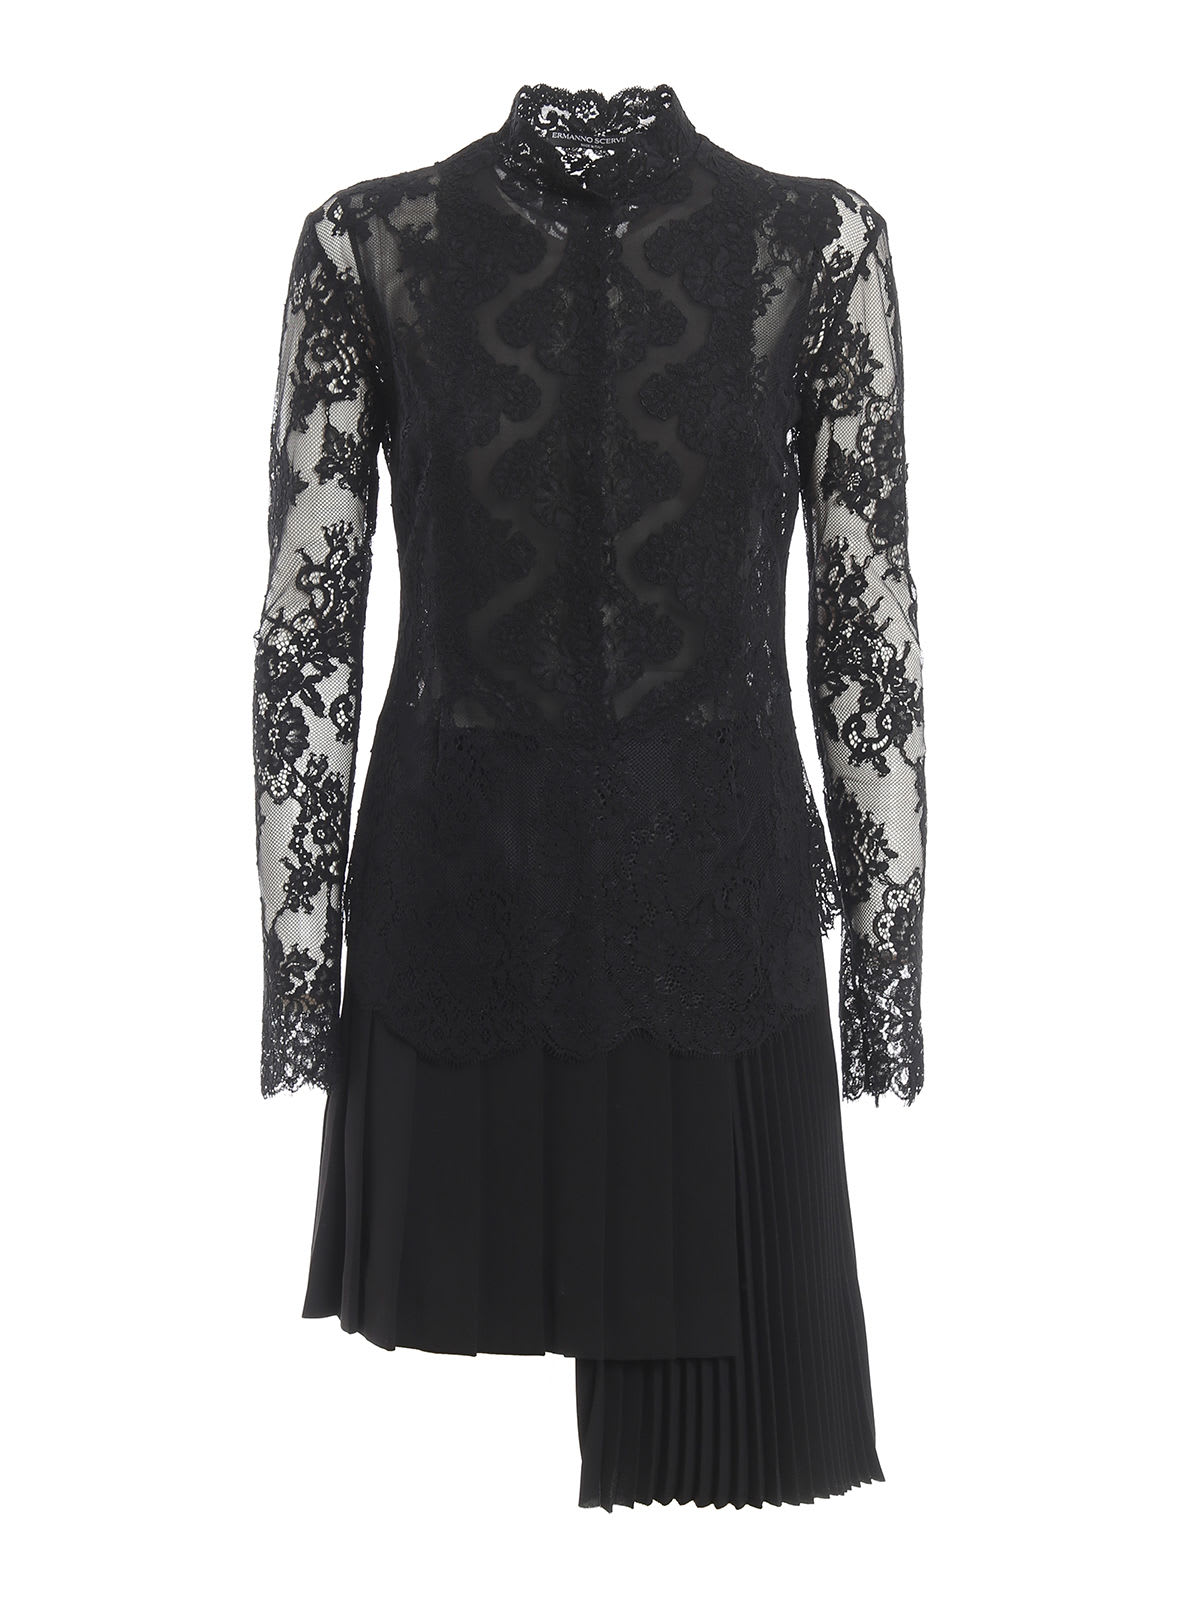 Ermanno Scervino L & s Mini Dress